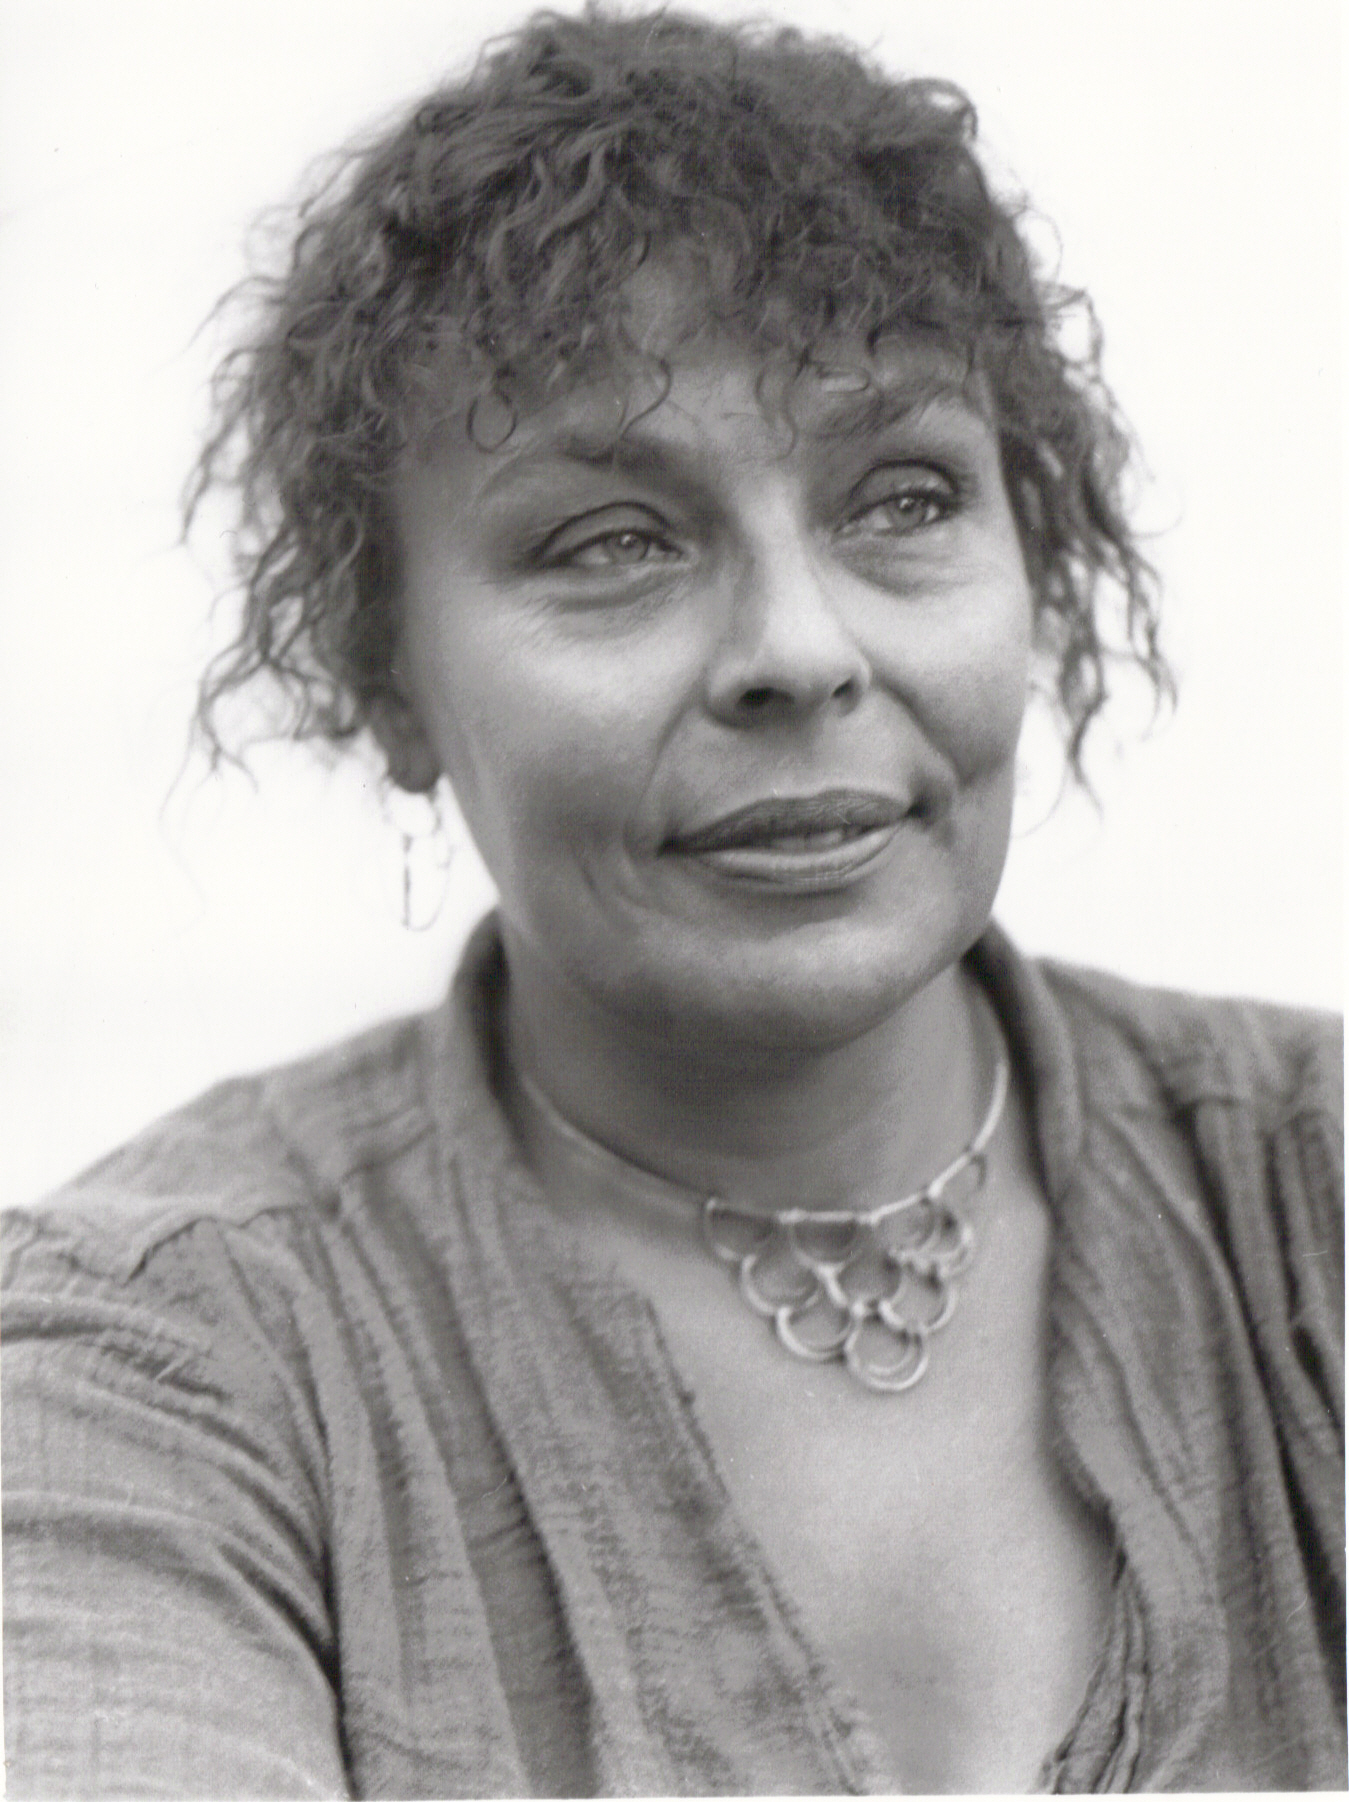 Marti Stevens - A founder of the Cornville Players & Director of all production from 1985 - 1991